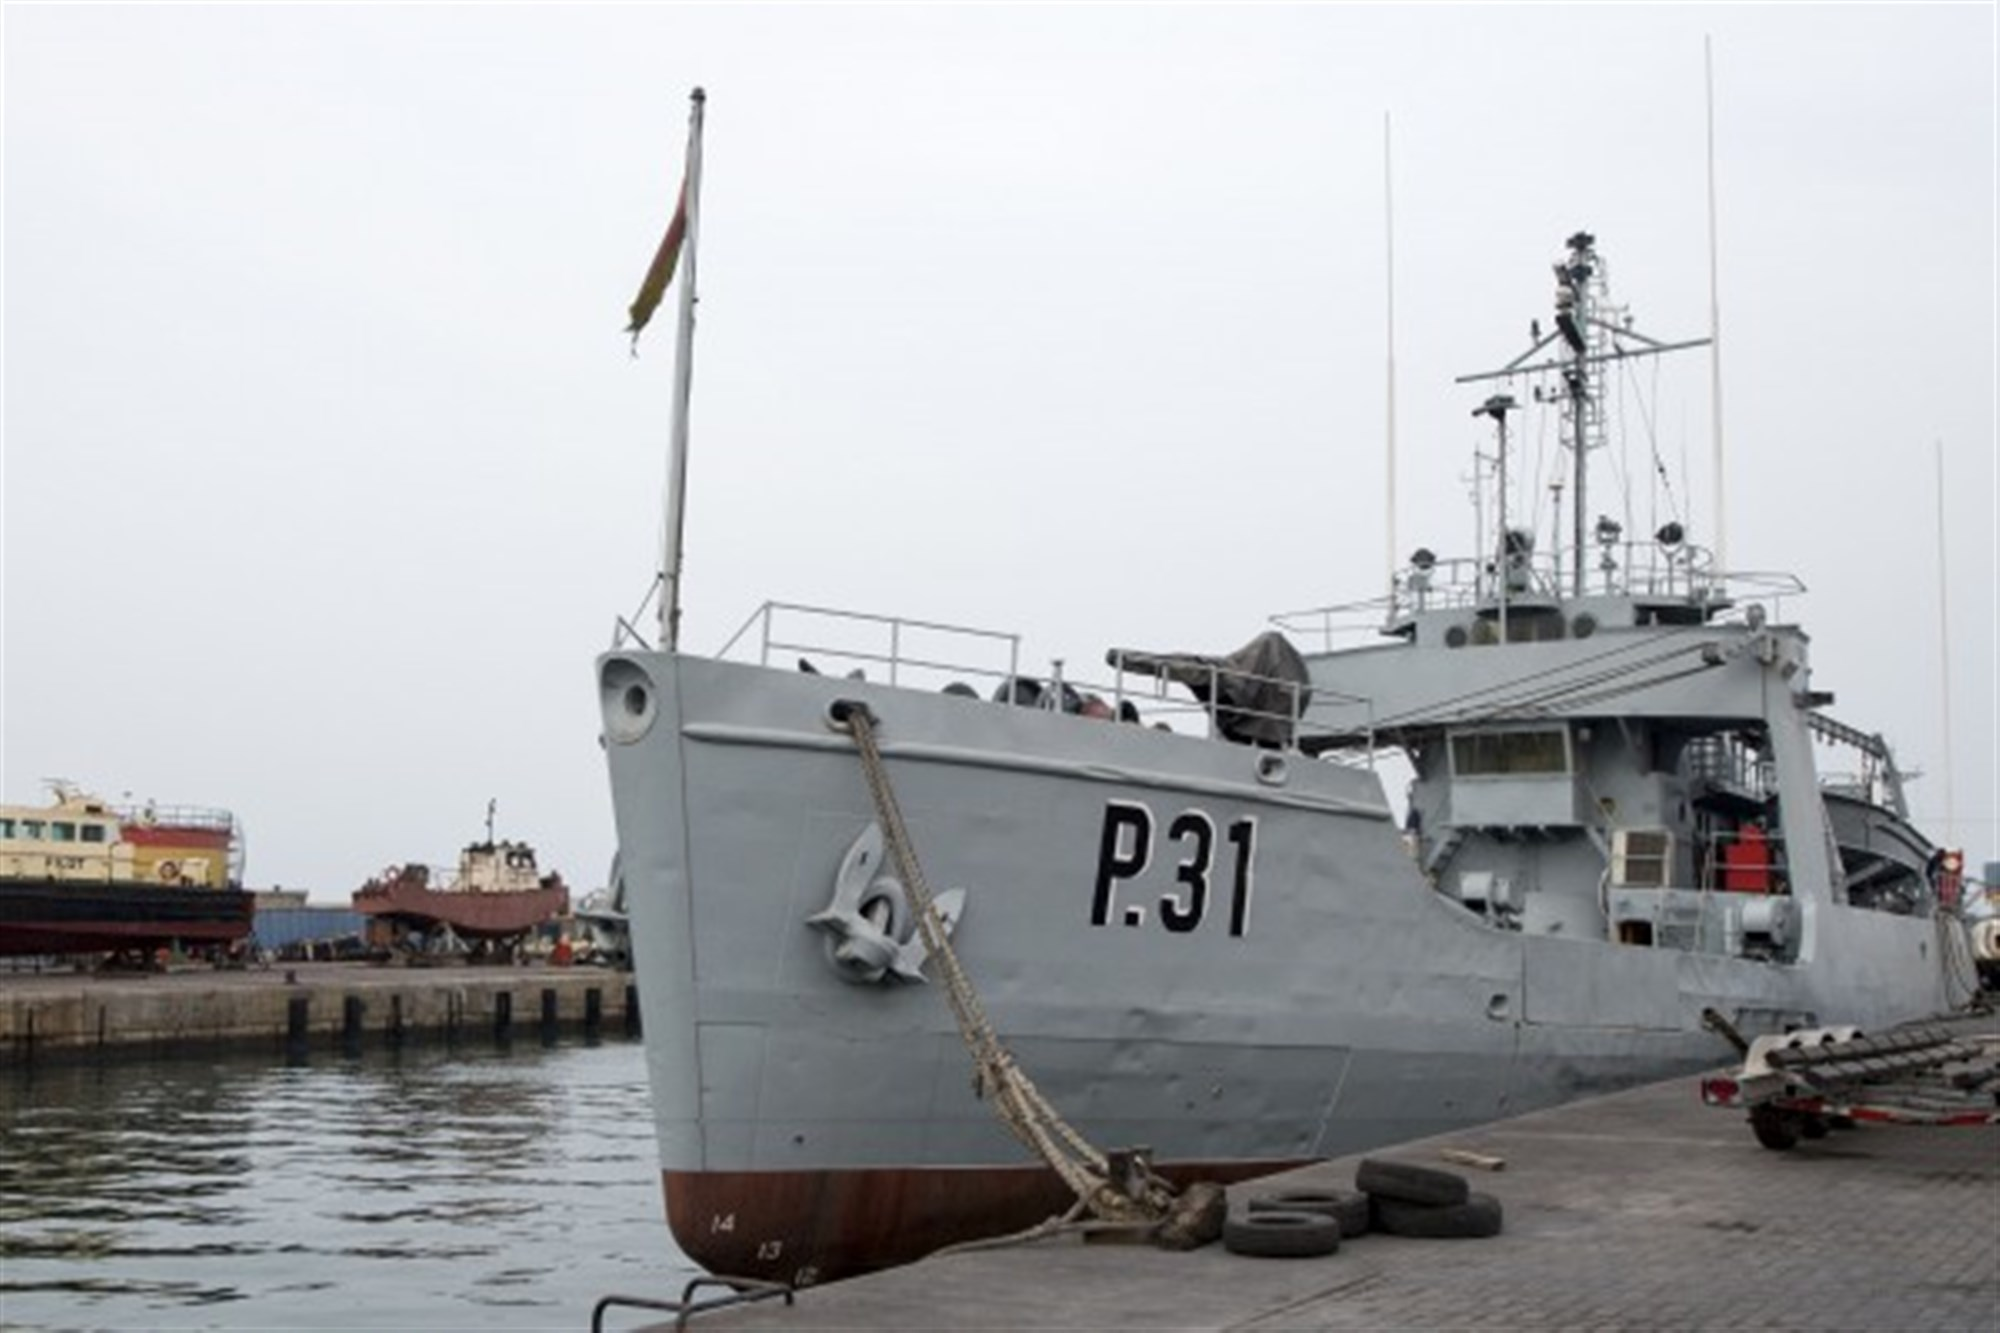 TEMA, Ghana (March 19, 2015) – GNS Bonsu, a former U.S. Coast Guard ship sold to the Ghana navy in 2001, is moored at the port of Tema, Ghana, March 19, 2015. Bonsu is currently docked as it awaits repairs, and is scheduled to participate in work-up trials later this summer. (U.S. Navy photo by Mass Communication Specialist 3rd Class Luis R. Chavez Jr/Released)